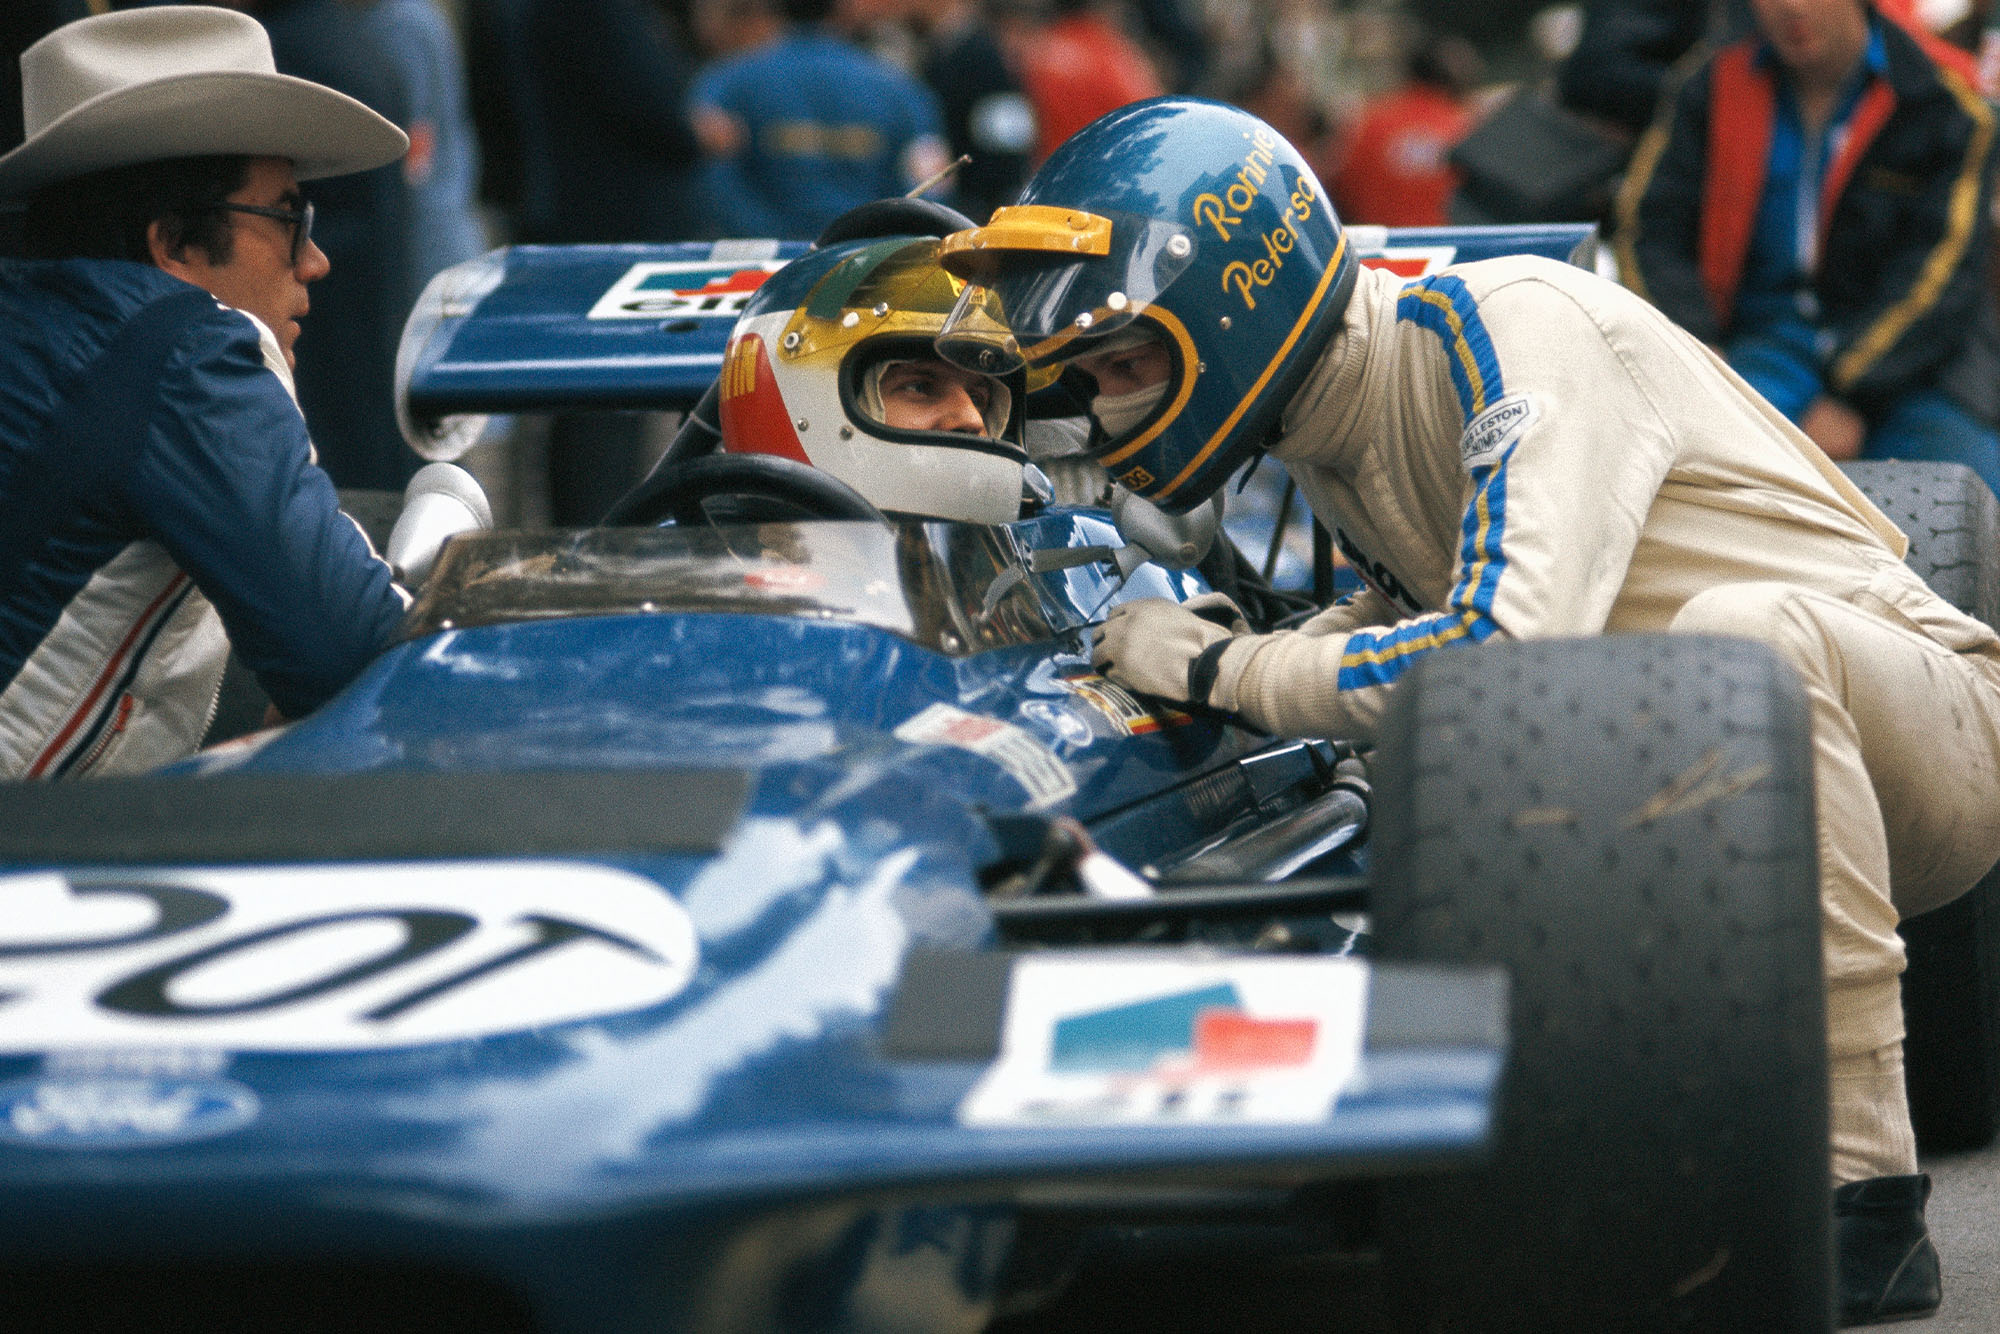 Ronnie Peterson talks to Johnny Servoz-Gavin on the grid